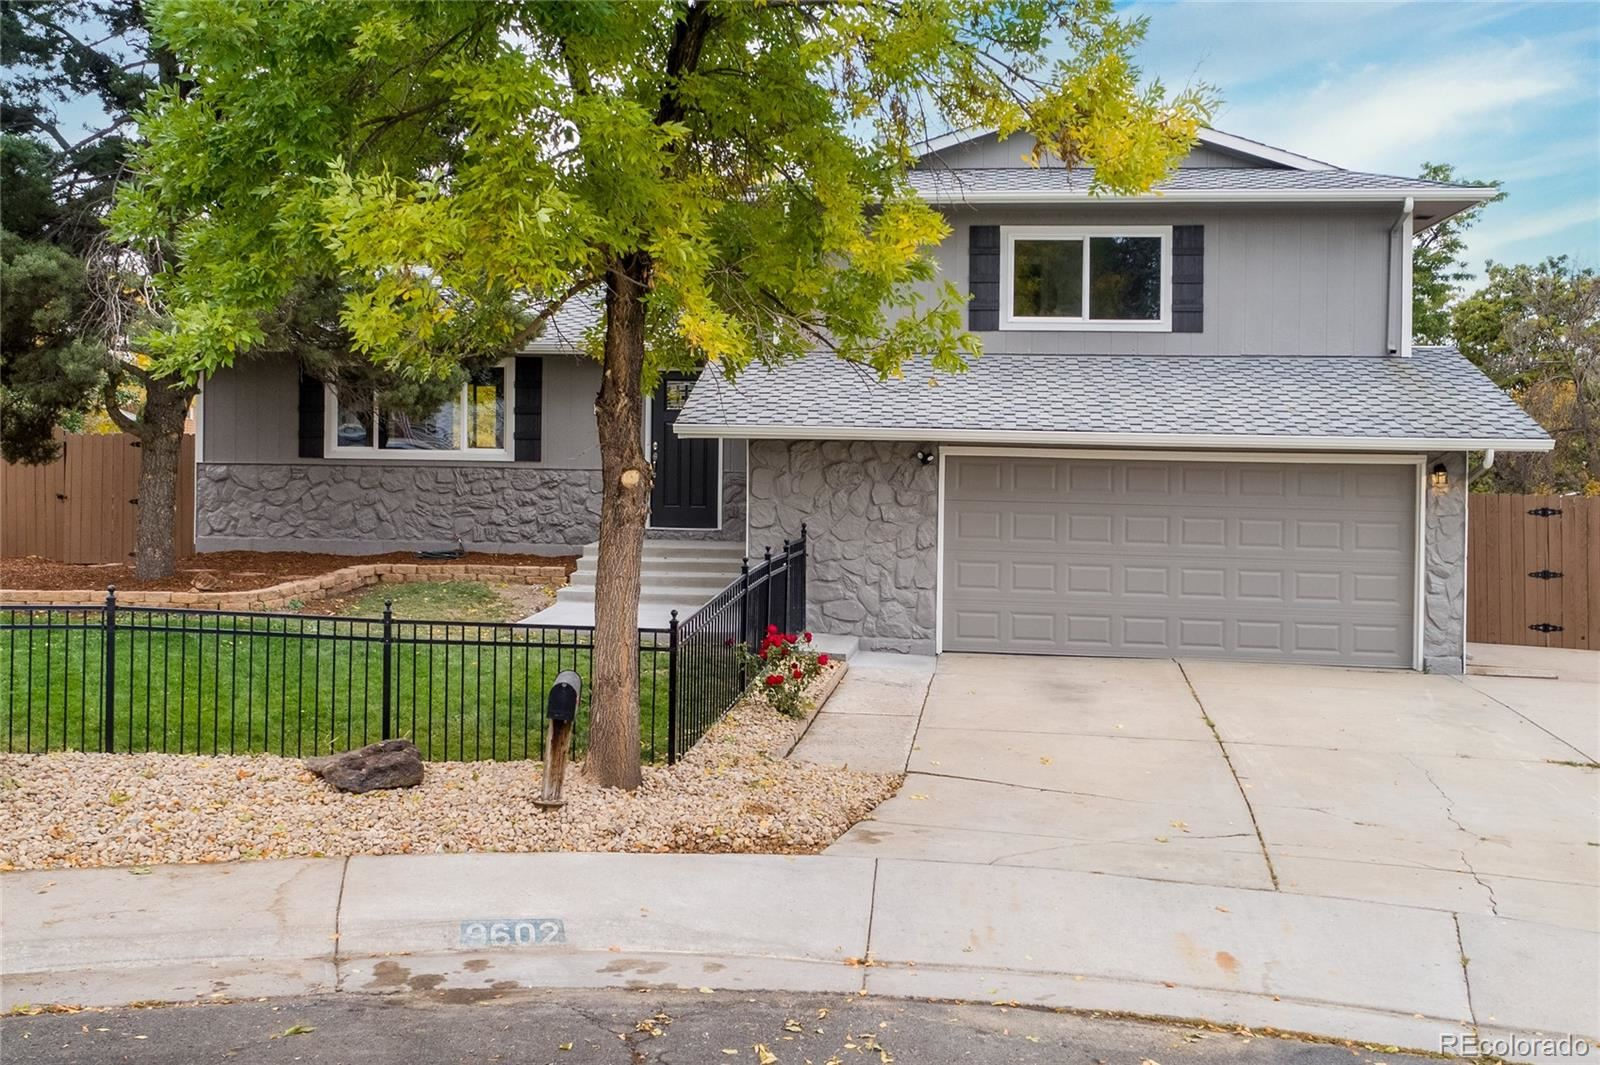 Photo of 9602 Meade Court, Westminster, CO 80031 (MLS # 5806550)